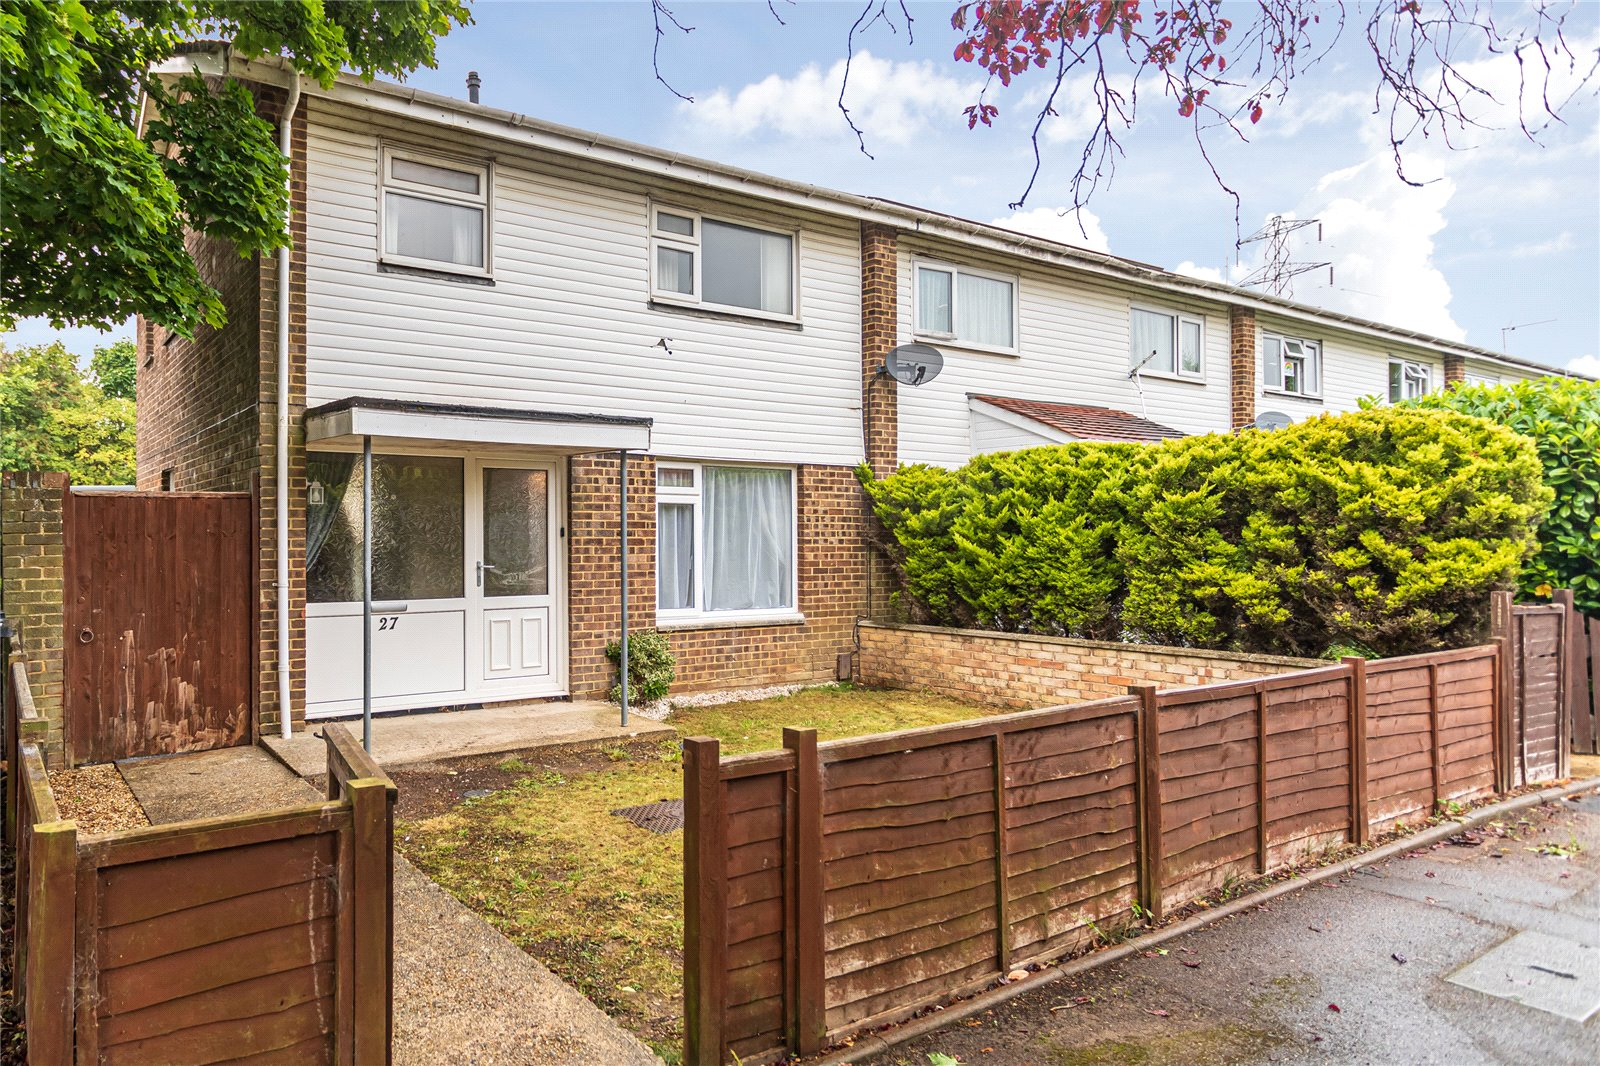 3 bed house for sale in King John Avenue, Bournemouth - Property Image 1